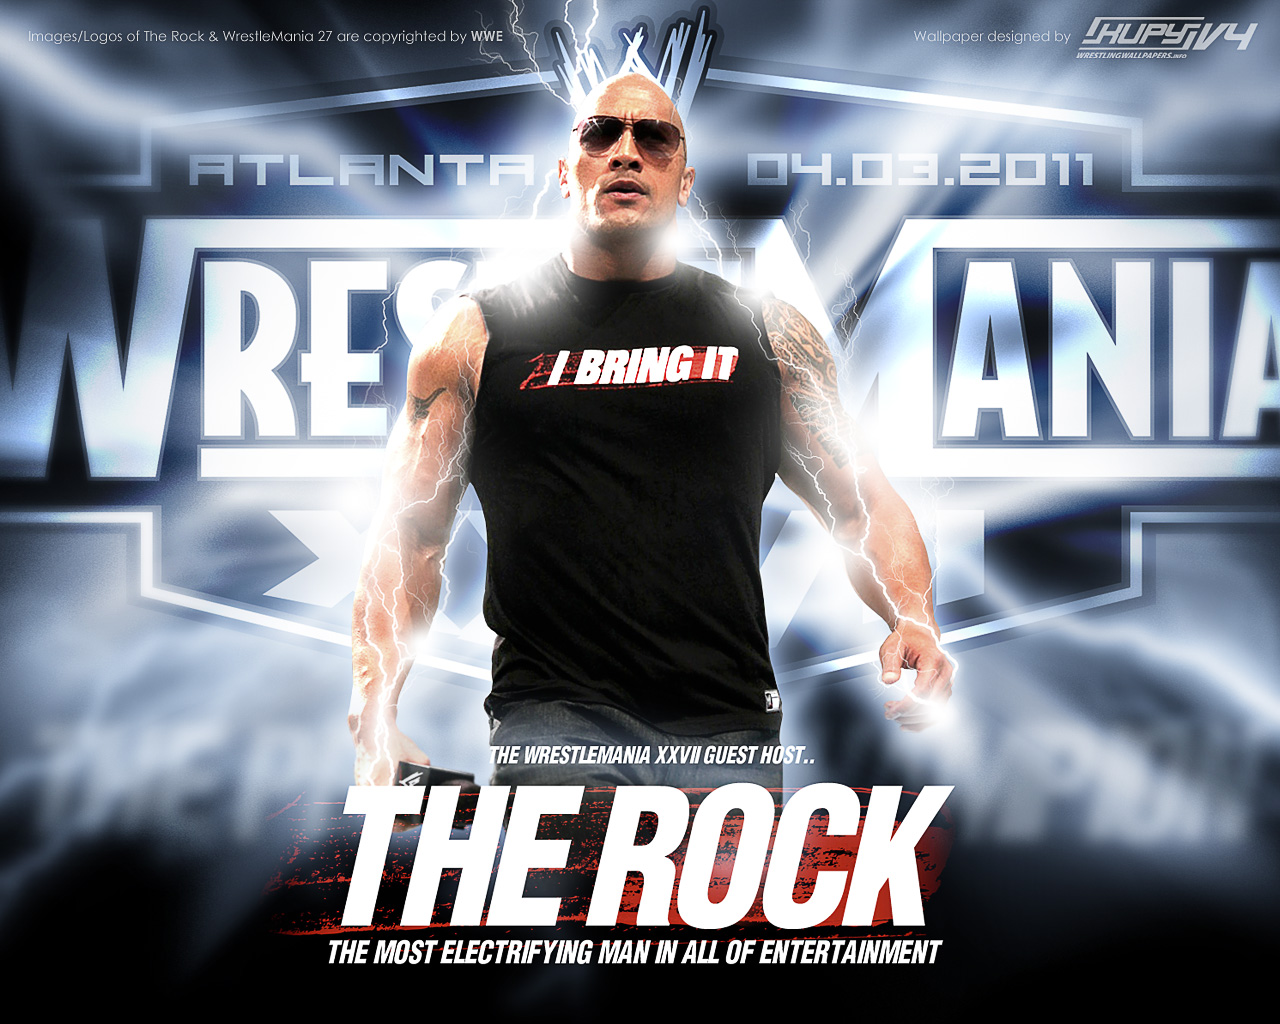 The Rock 2012 HD Wallpapers